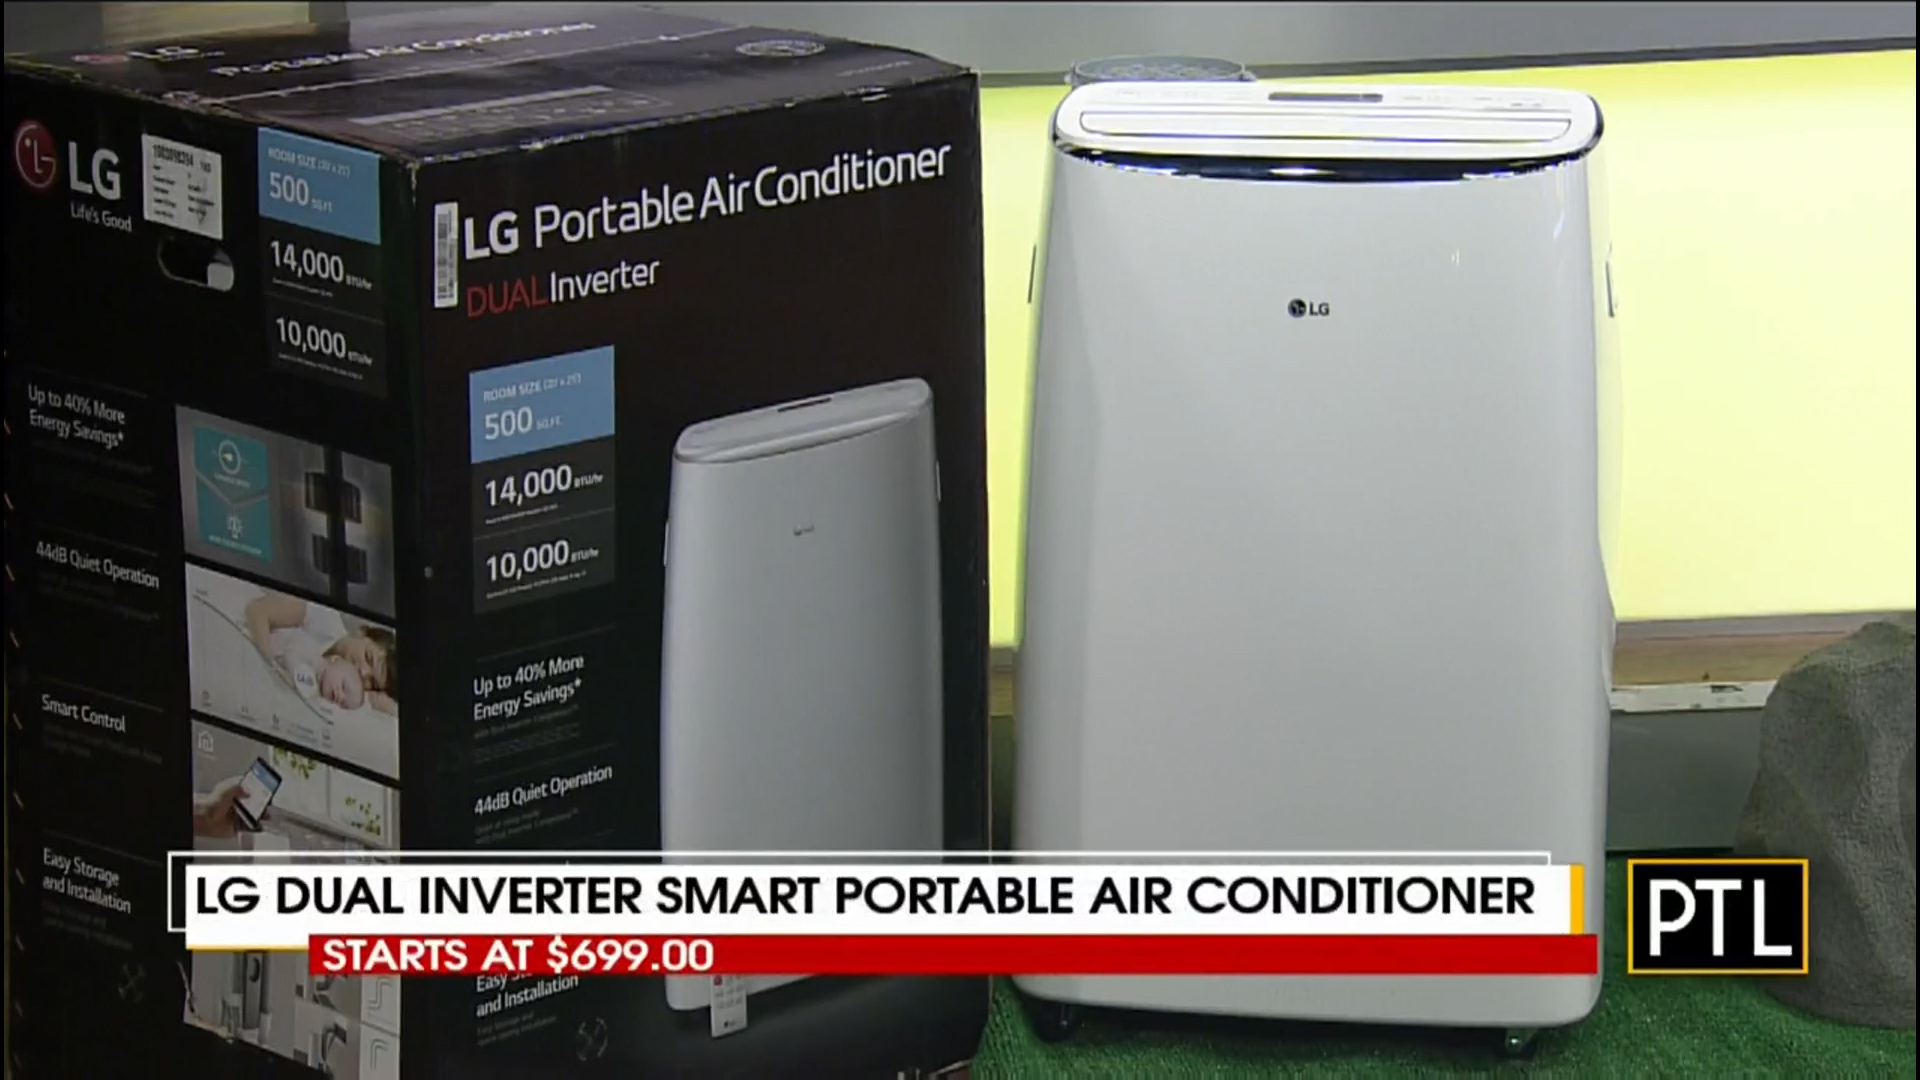 LG DUAL INVERTER SMART PORTABLE AIR CONDITIONER - Starts at $699.00Shop Now